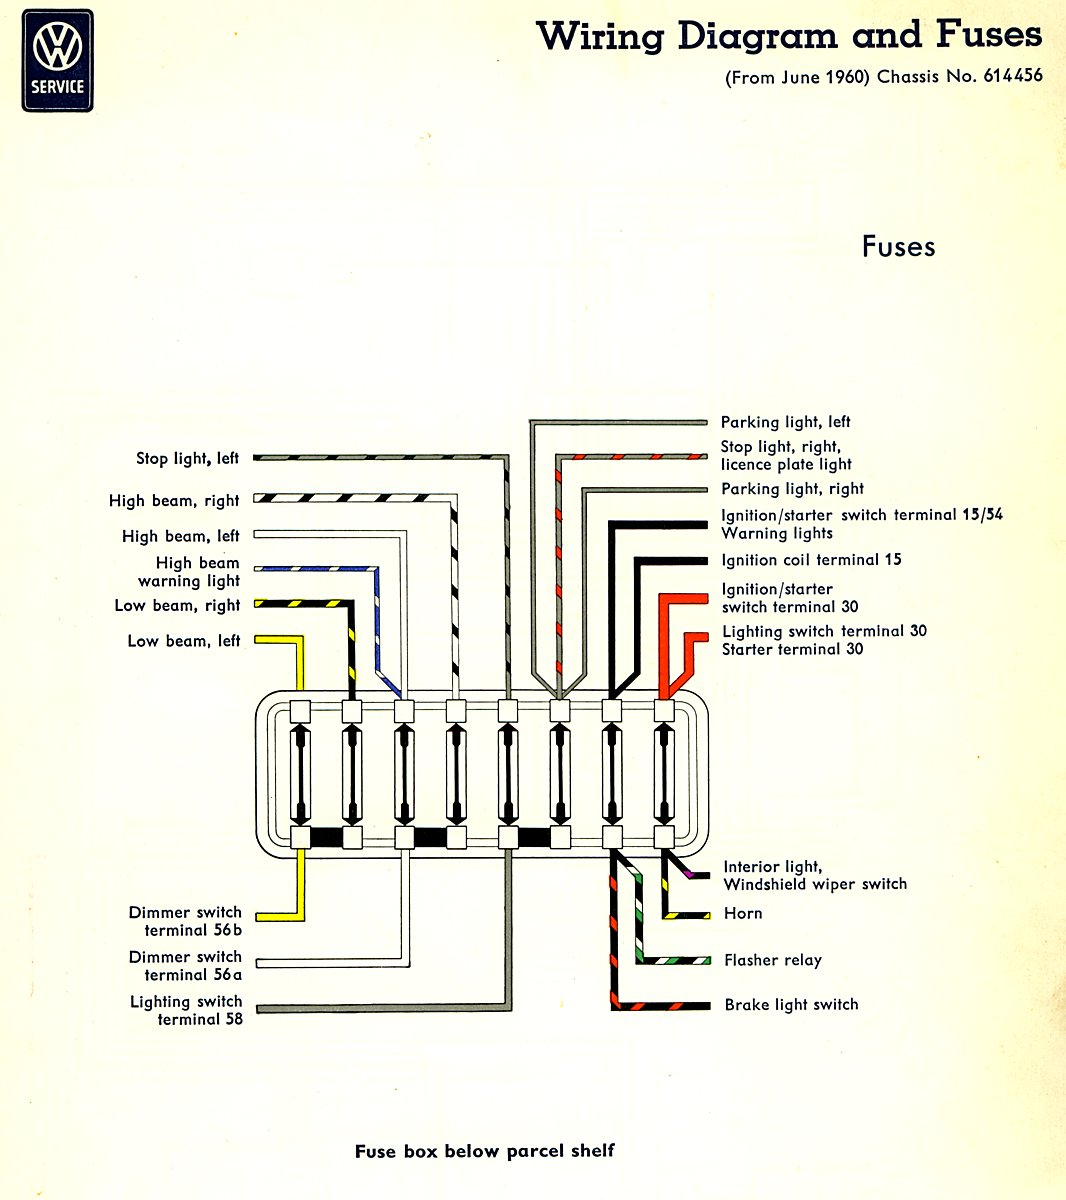 1966 Vw Beetle Fuse Box Diagram Free Wiring For You 2006 Jeep Liberty Low Beamshigh Beamswiring Diagramfuses 1964 Third Level Rh 4 18 21 Jacobwinterstein Com 1998